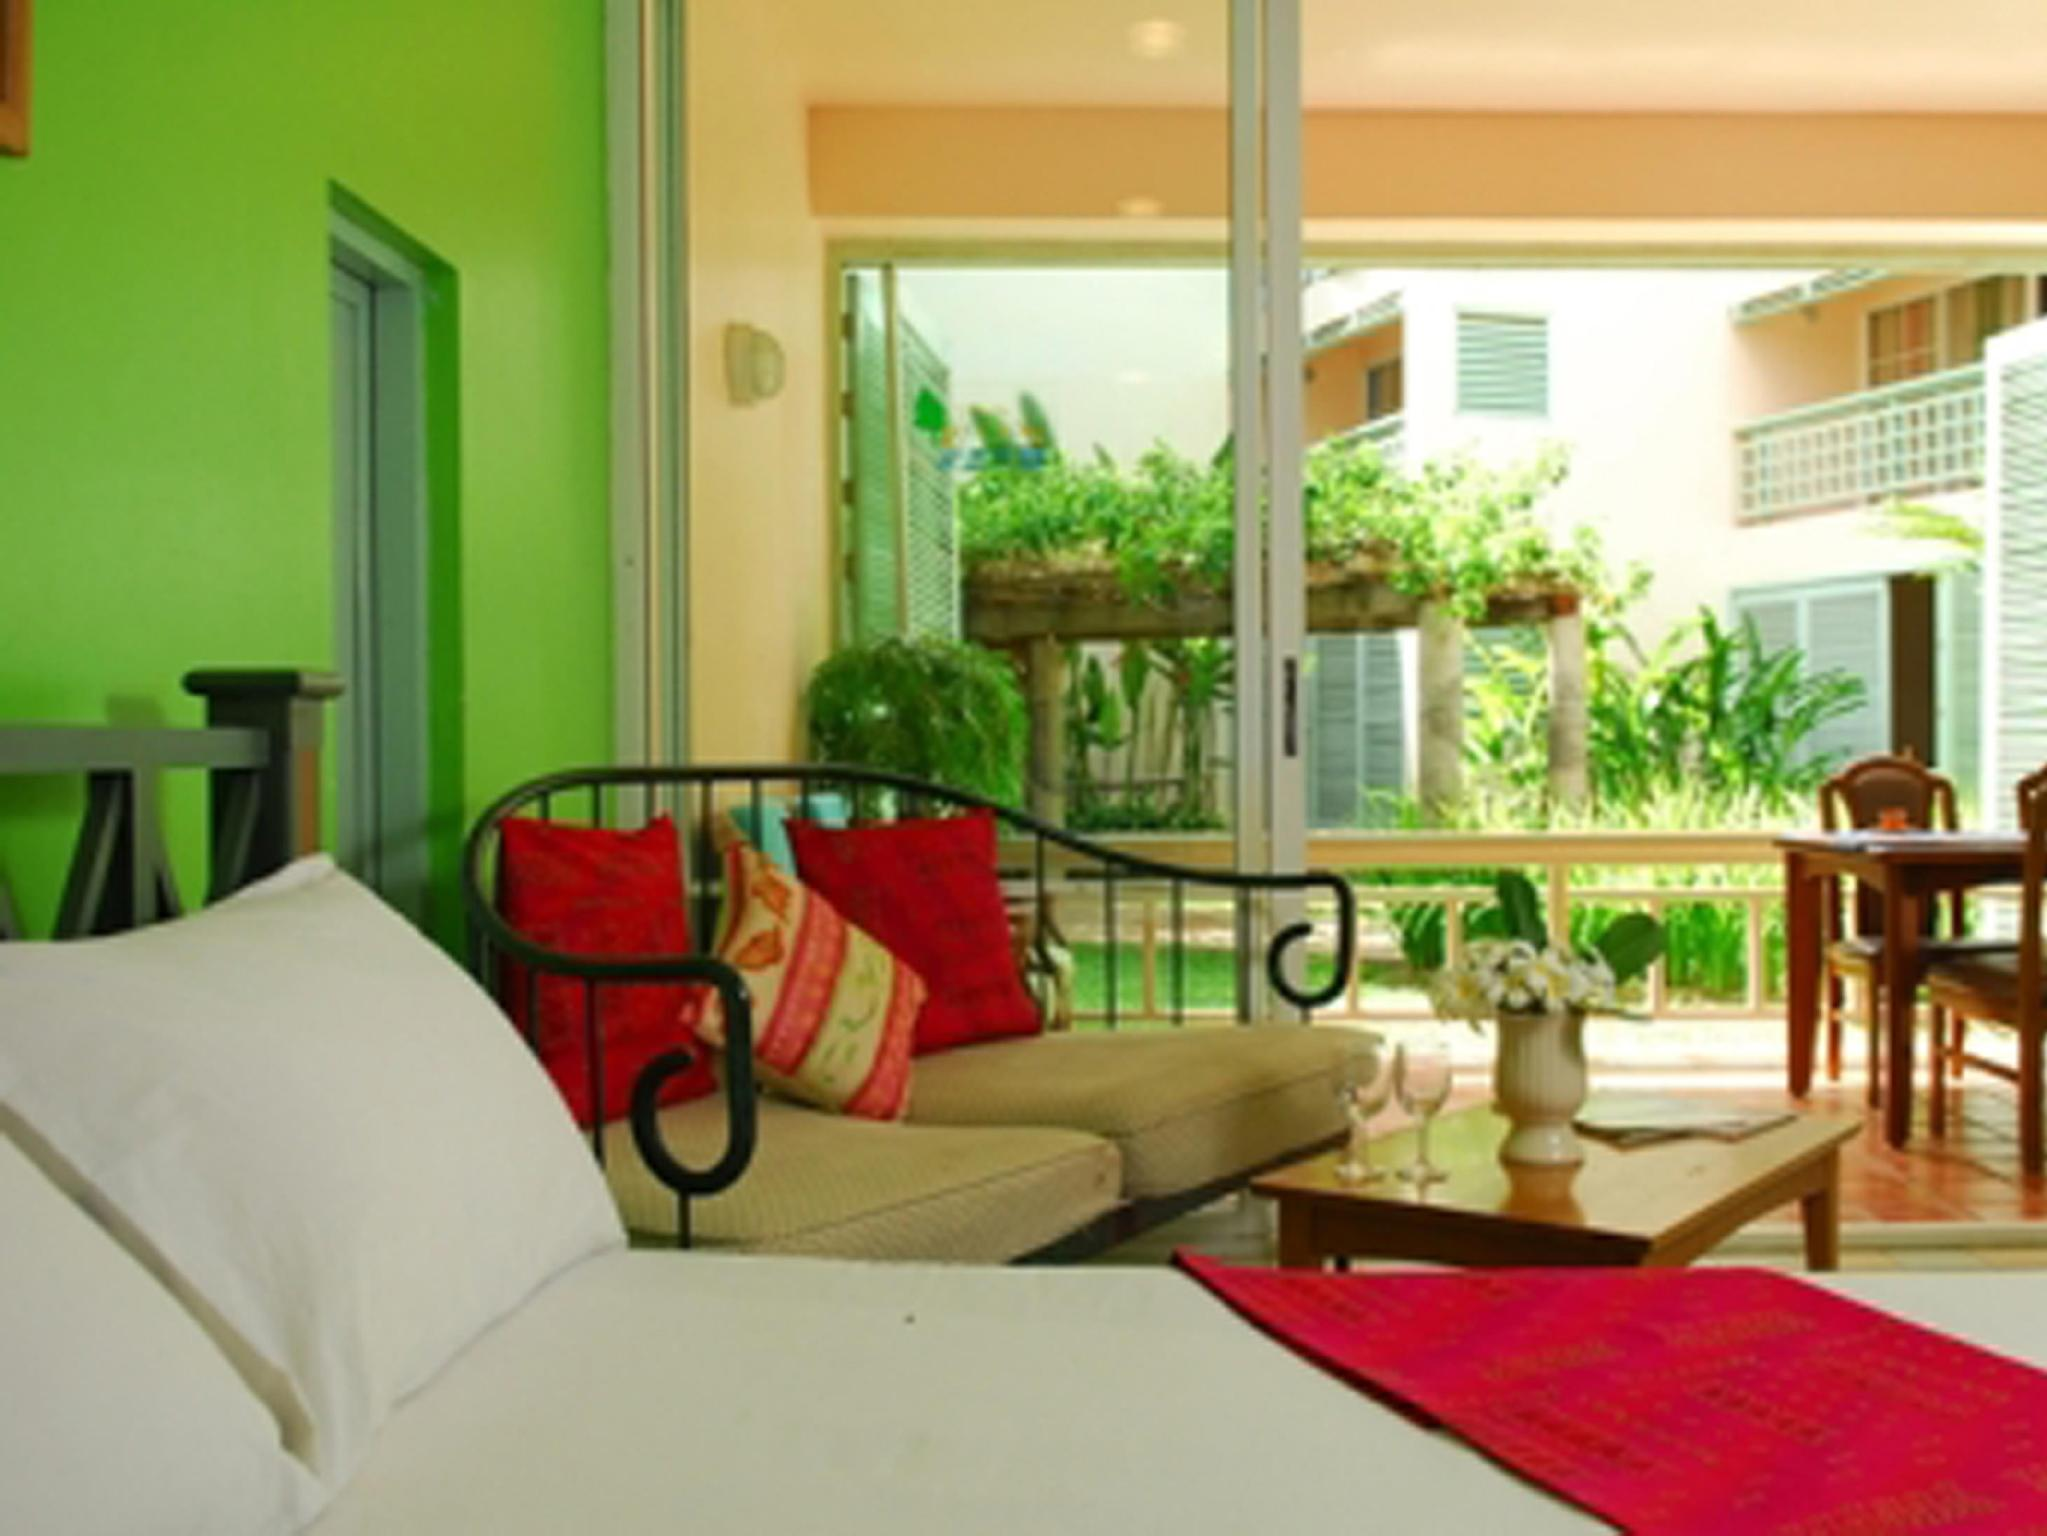 Best Price on Chom View Hotel in Hua Hin / Cha-am + Reviews